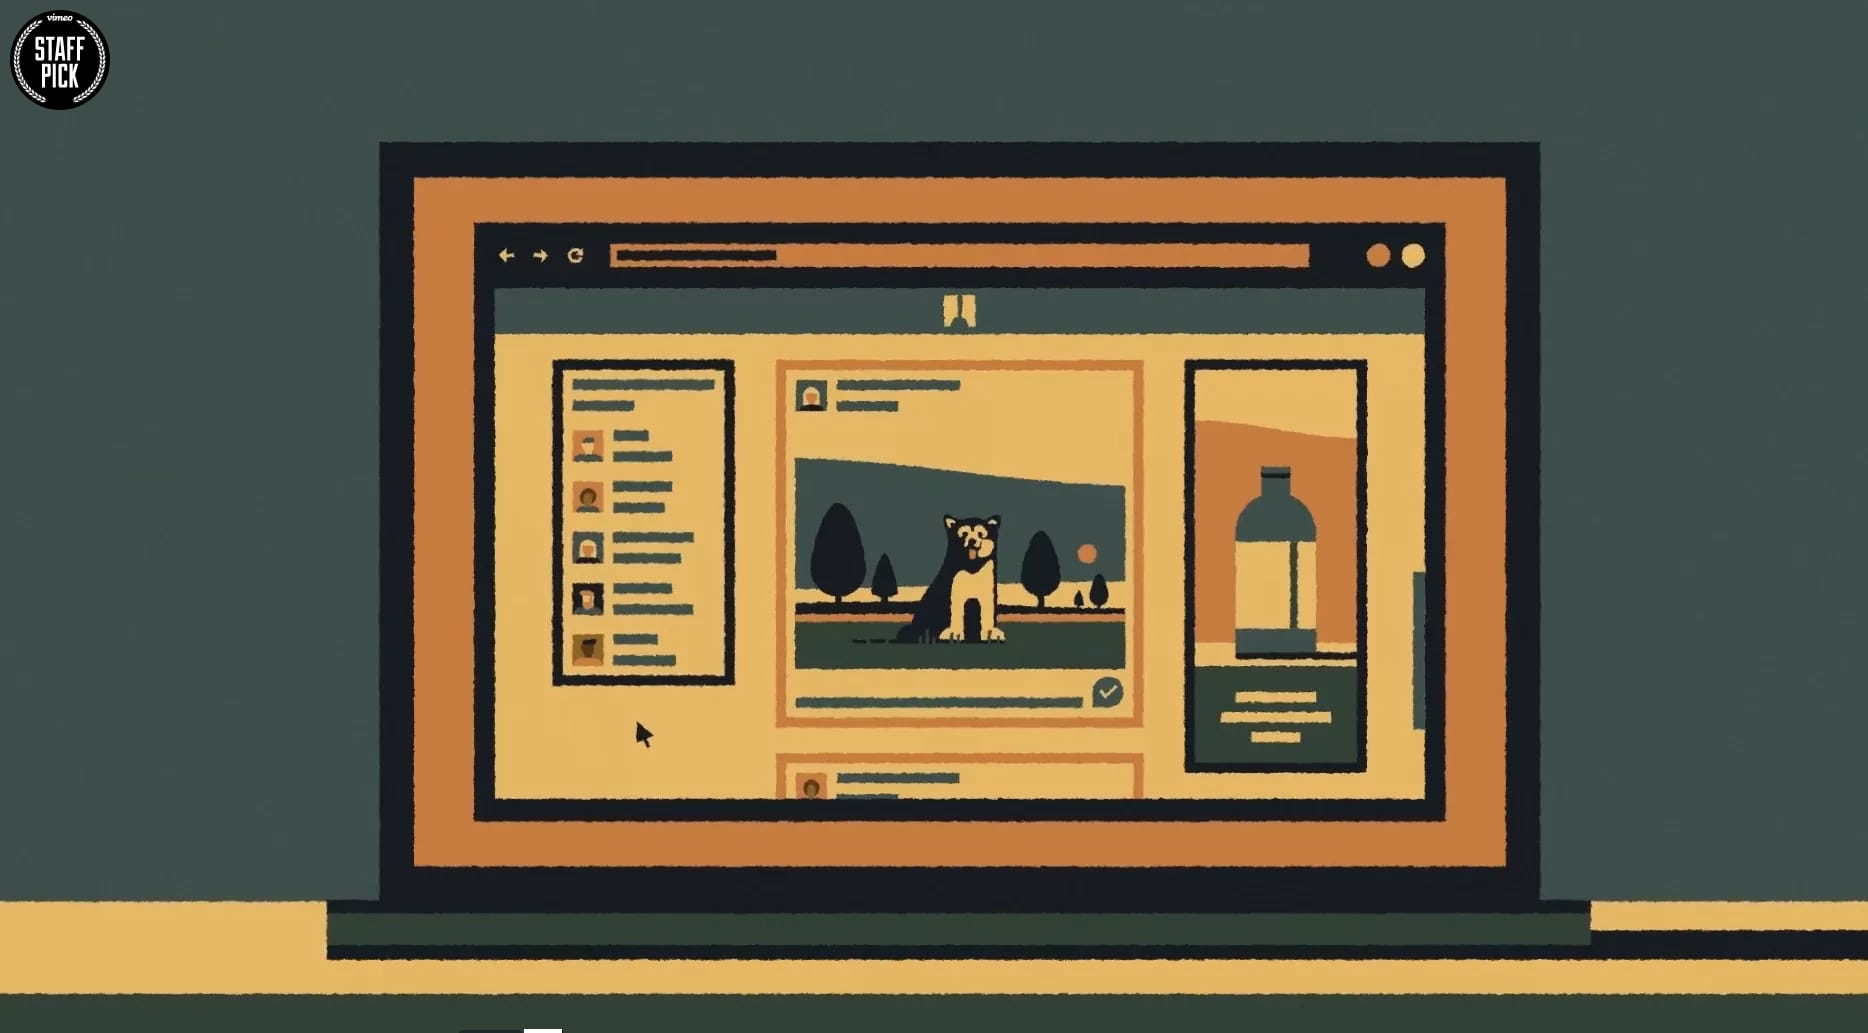 Illustration student selected as Vimeo 'Staff Pick'